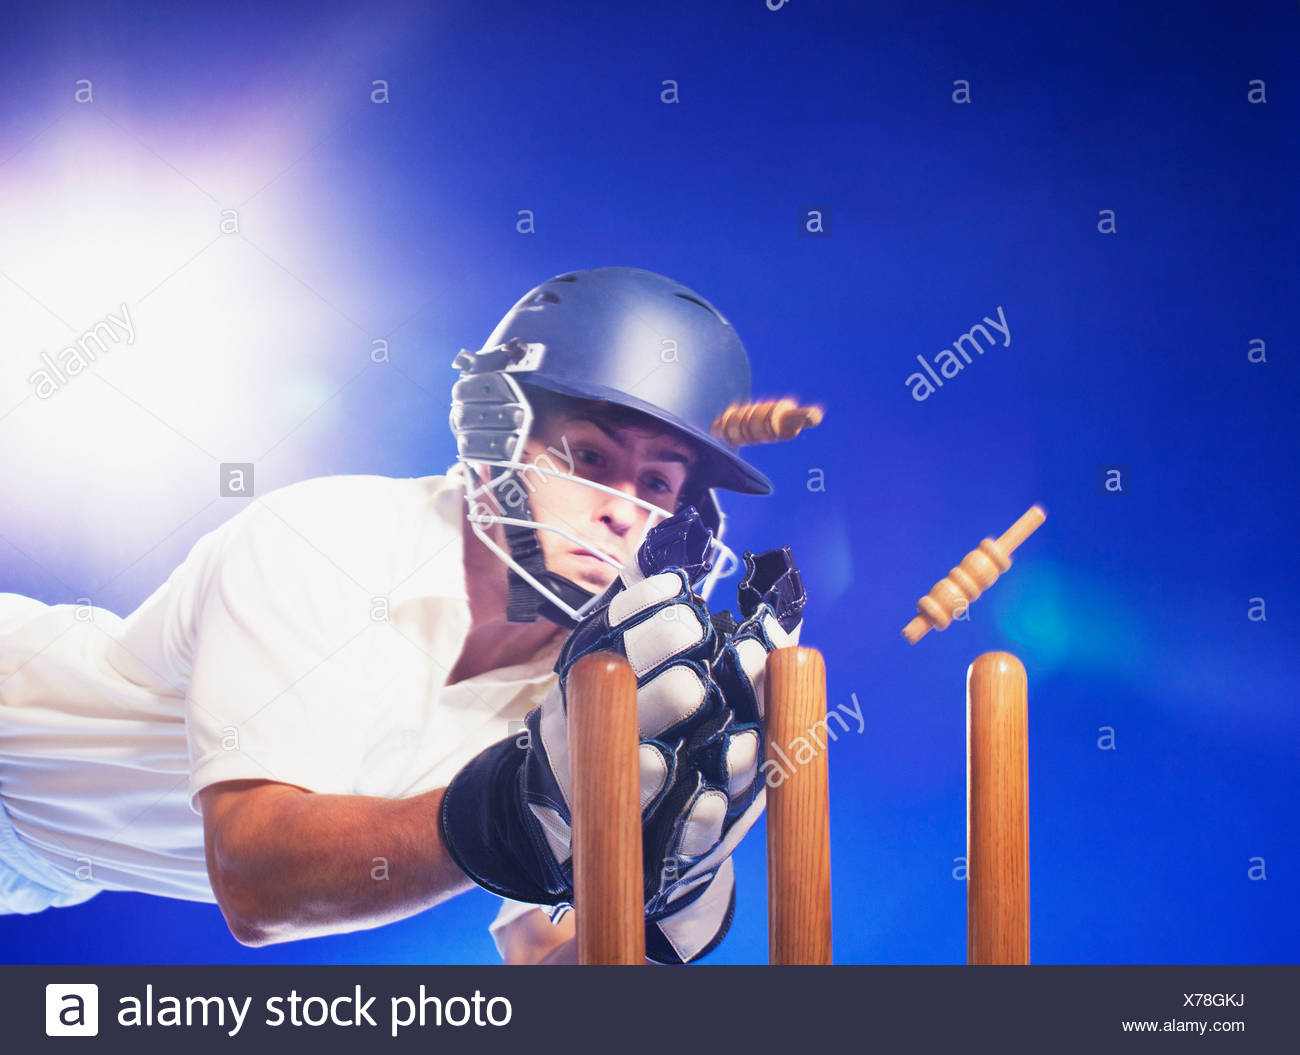 Cricket player reaching for bats - Stock Image